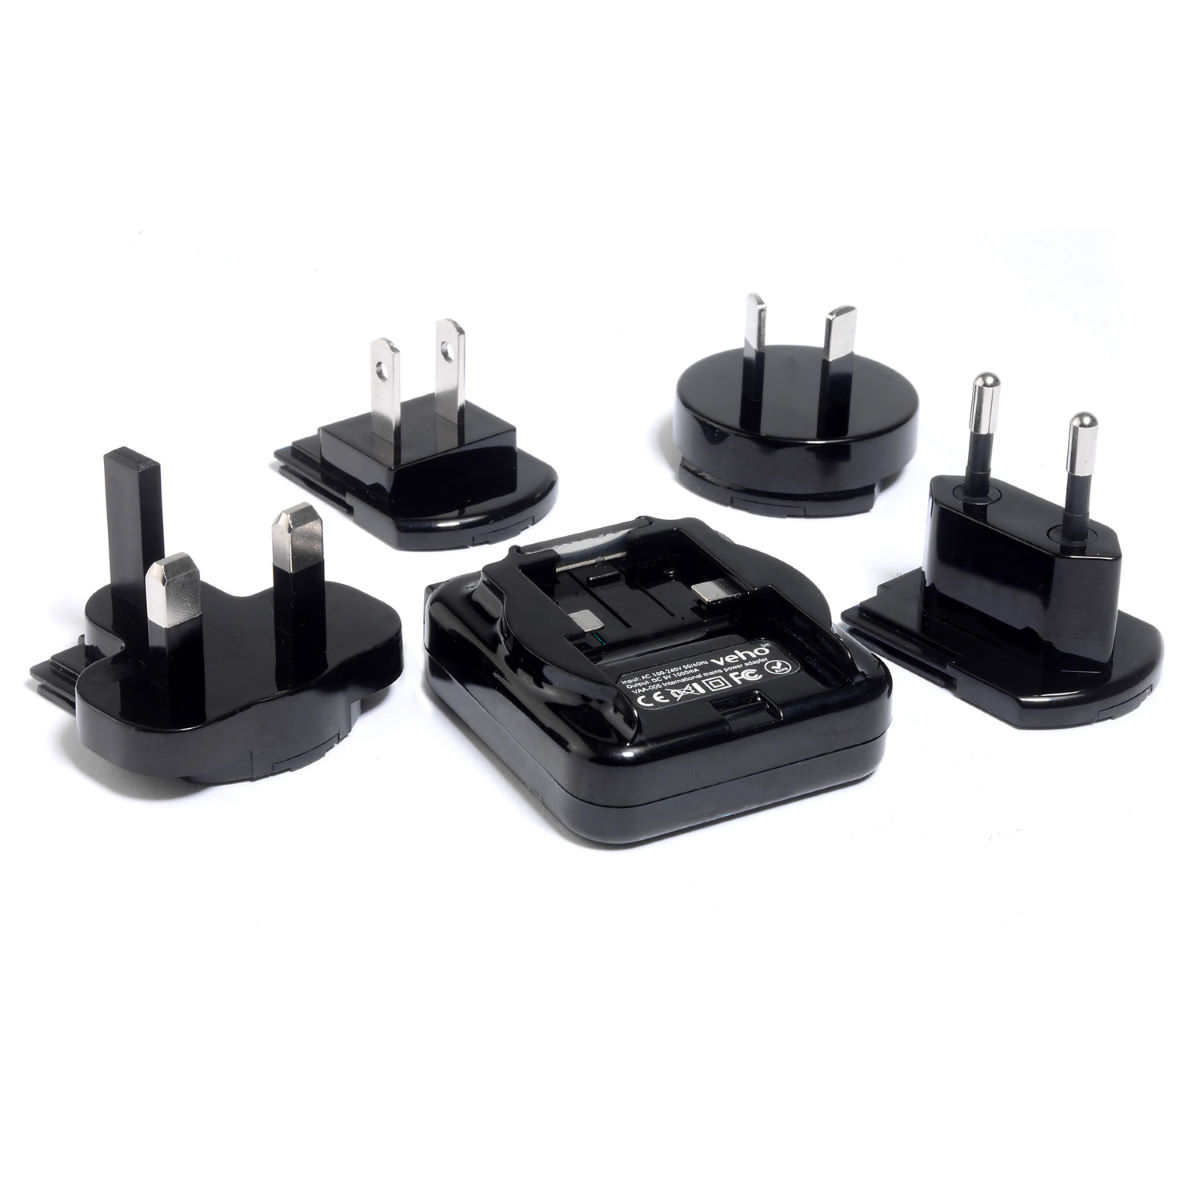 Veho Multi Regional Mains USB Adapter - Cargadores